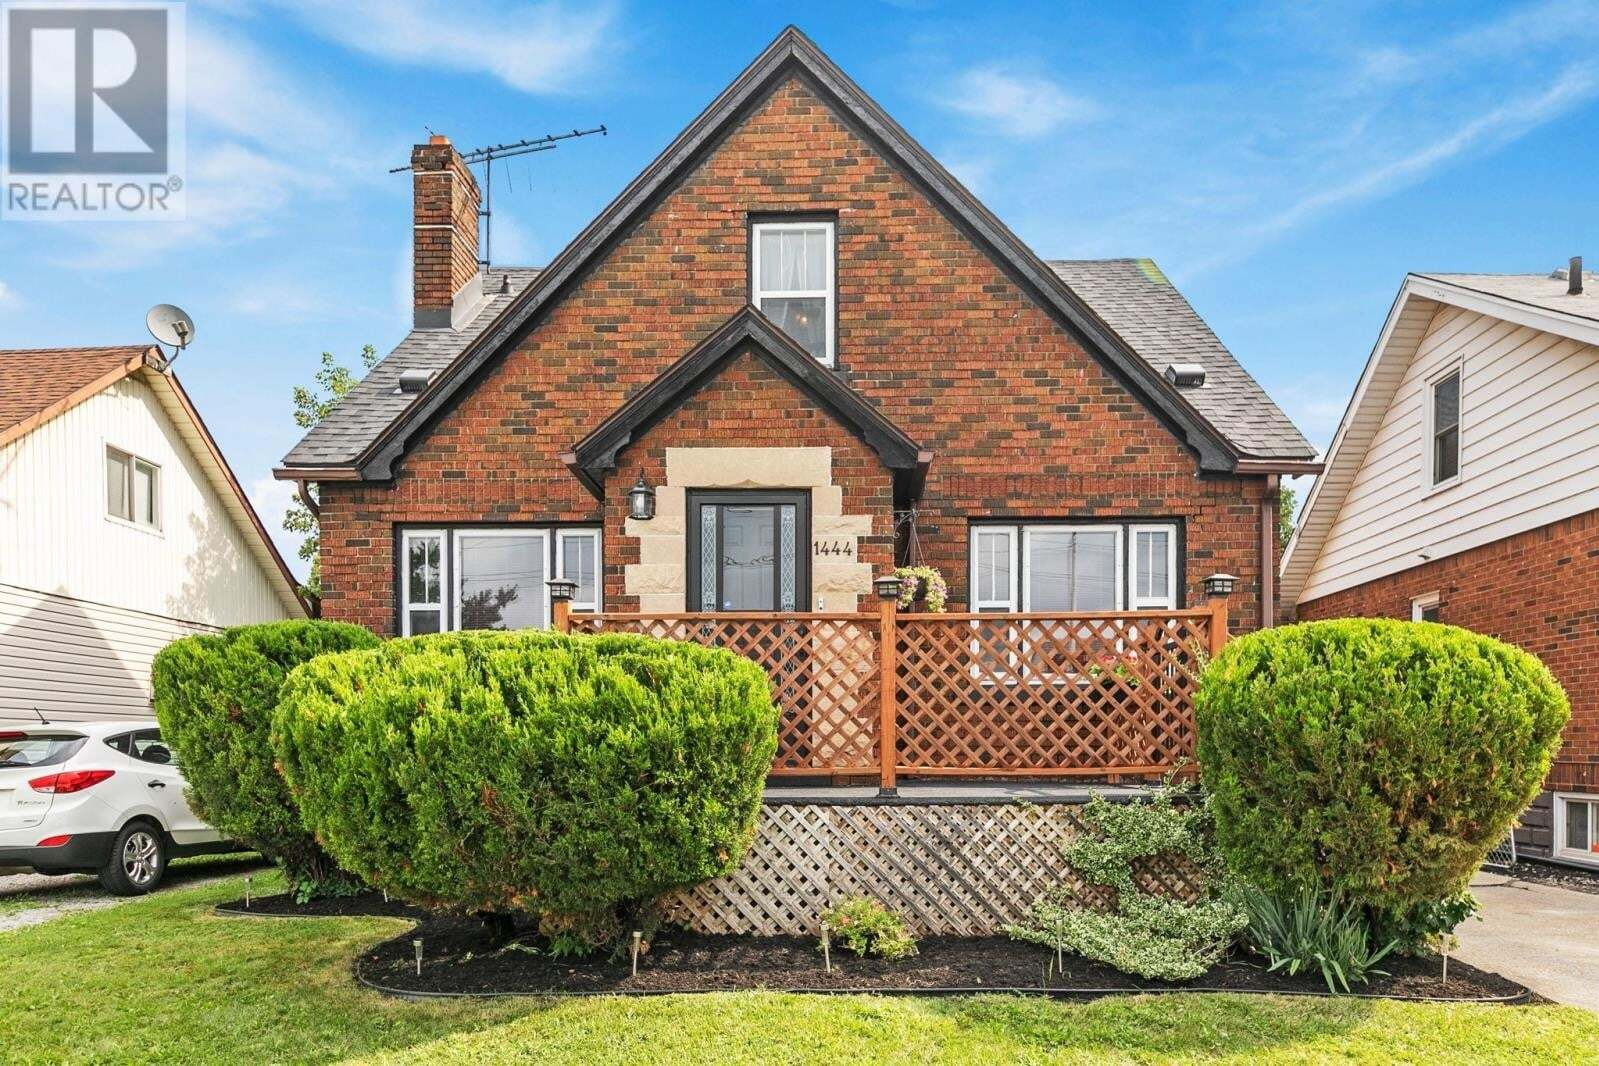 House for sale at 1444 Central  Windsor Ontario - MLS: 20011640